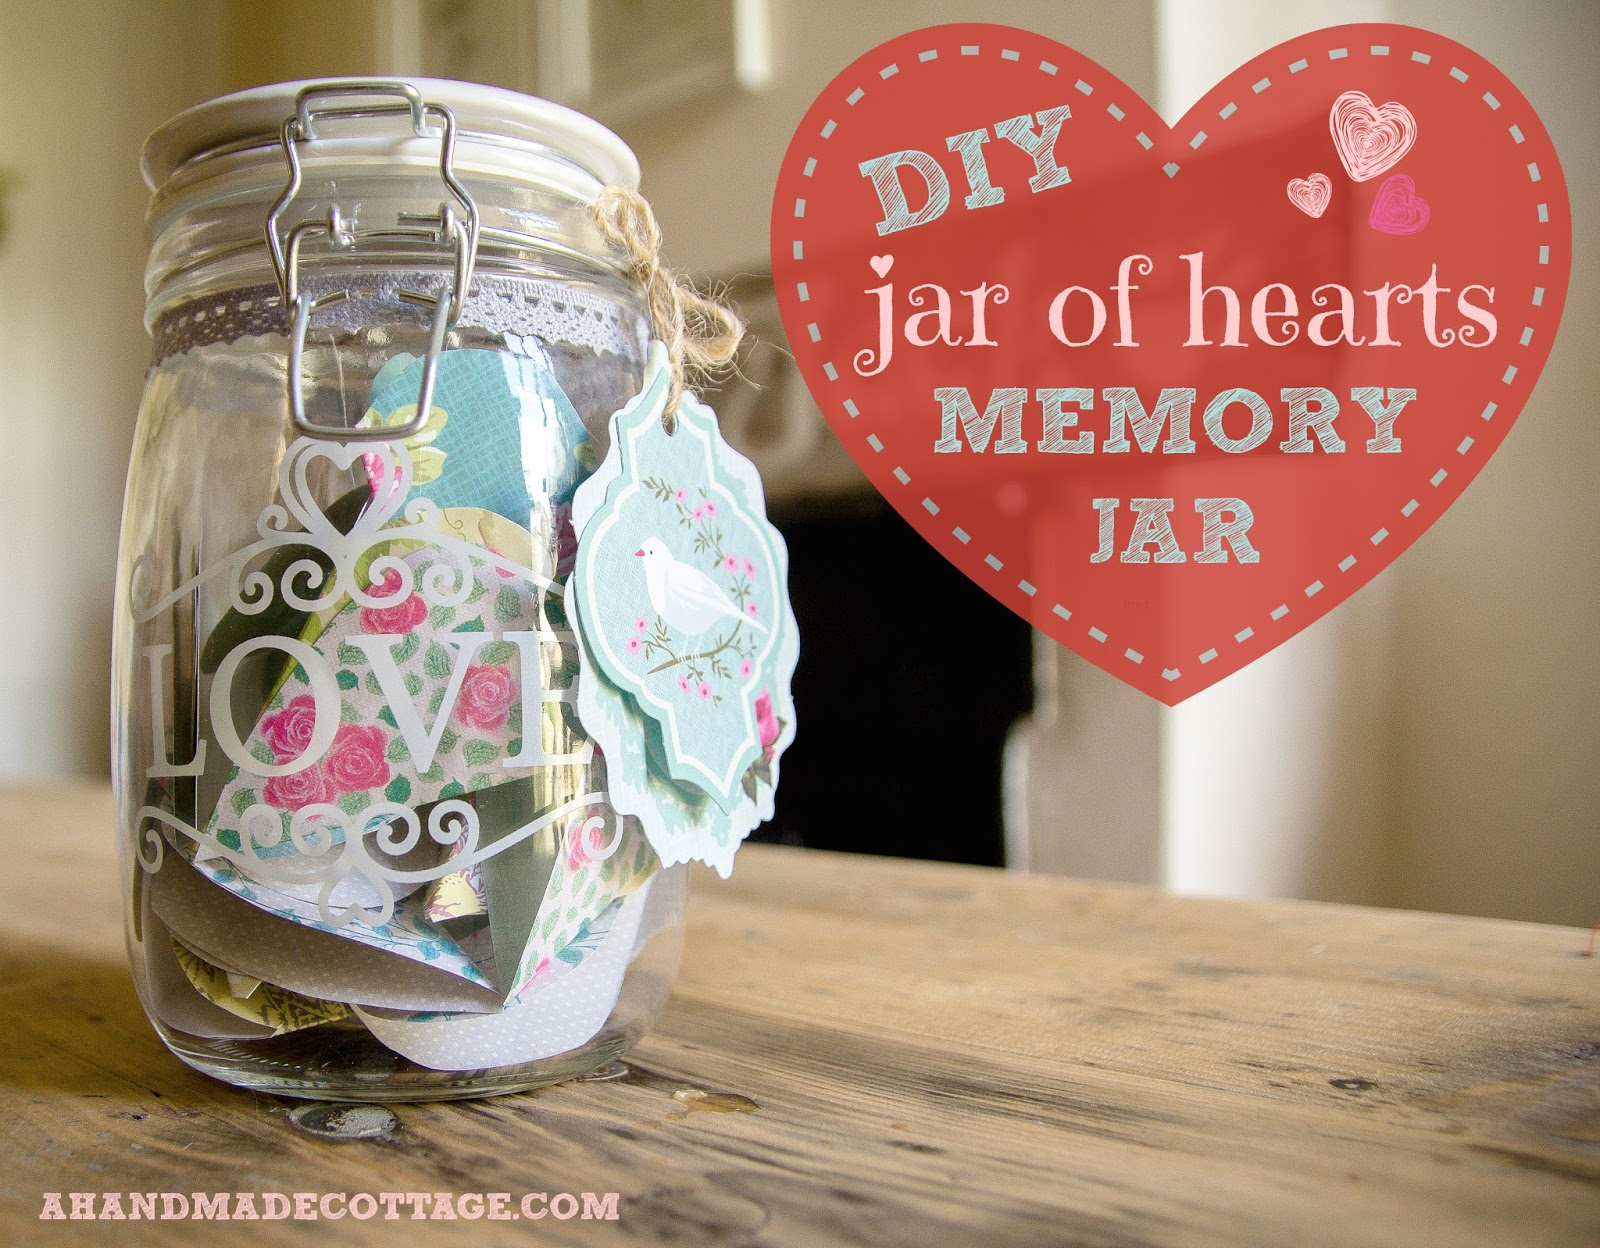 Memory Jars make beautiful gifts They are